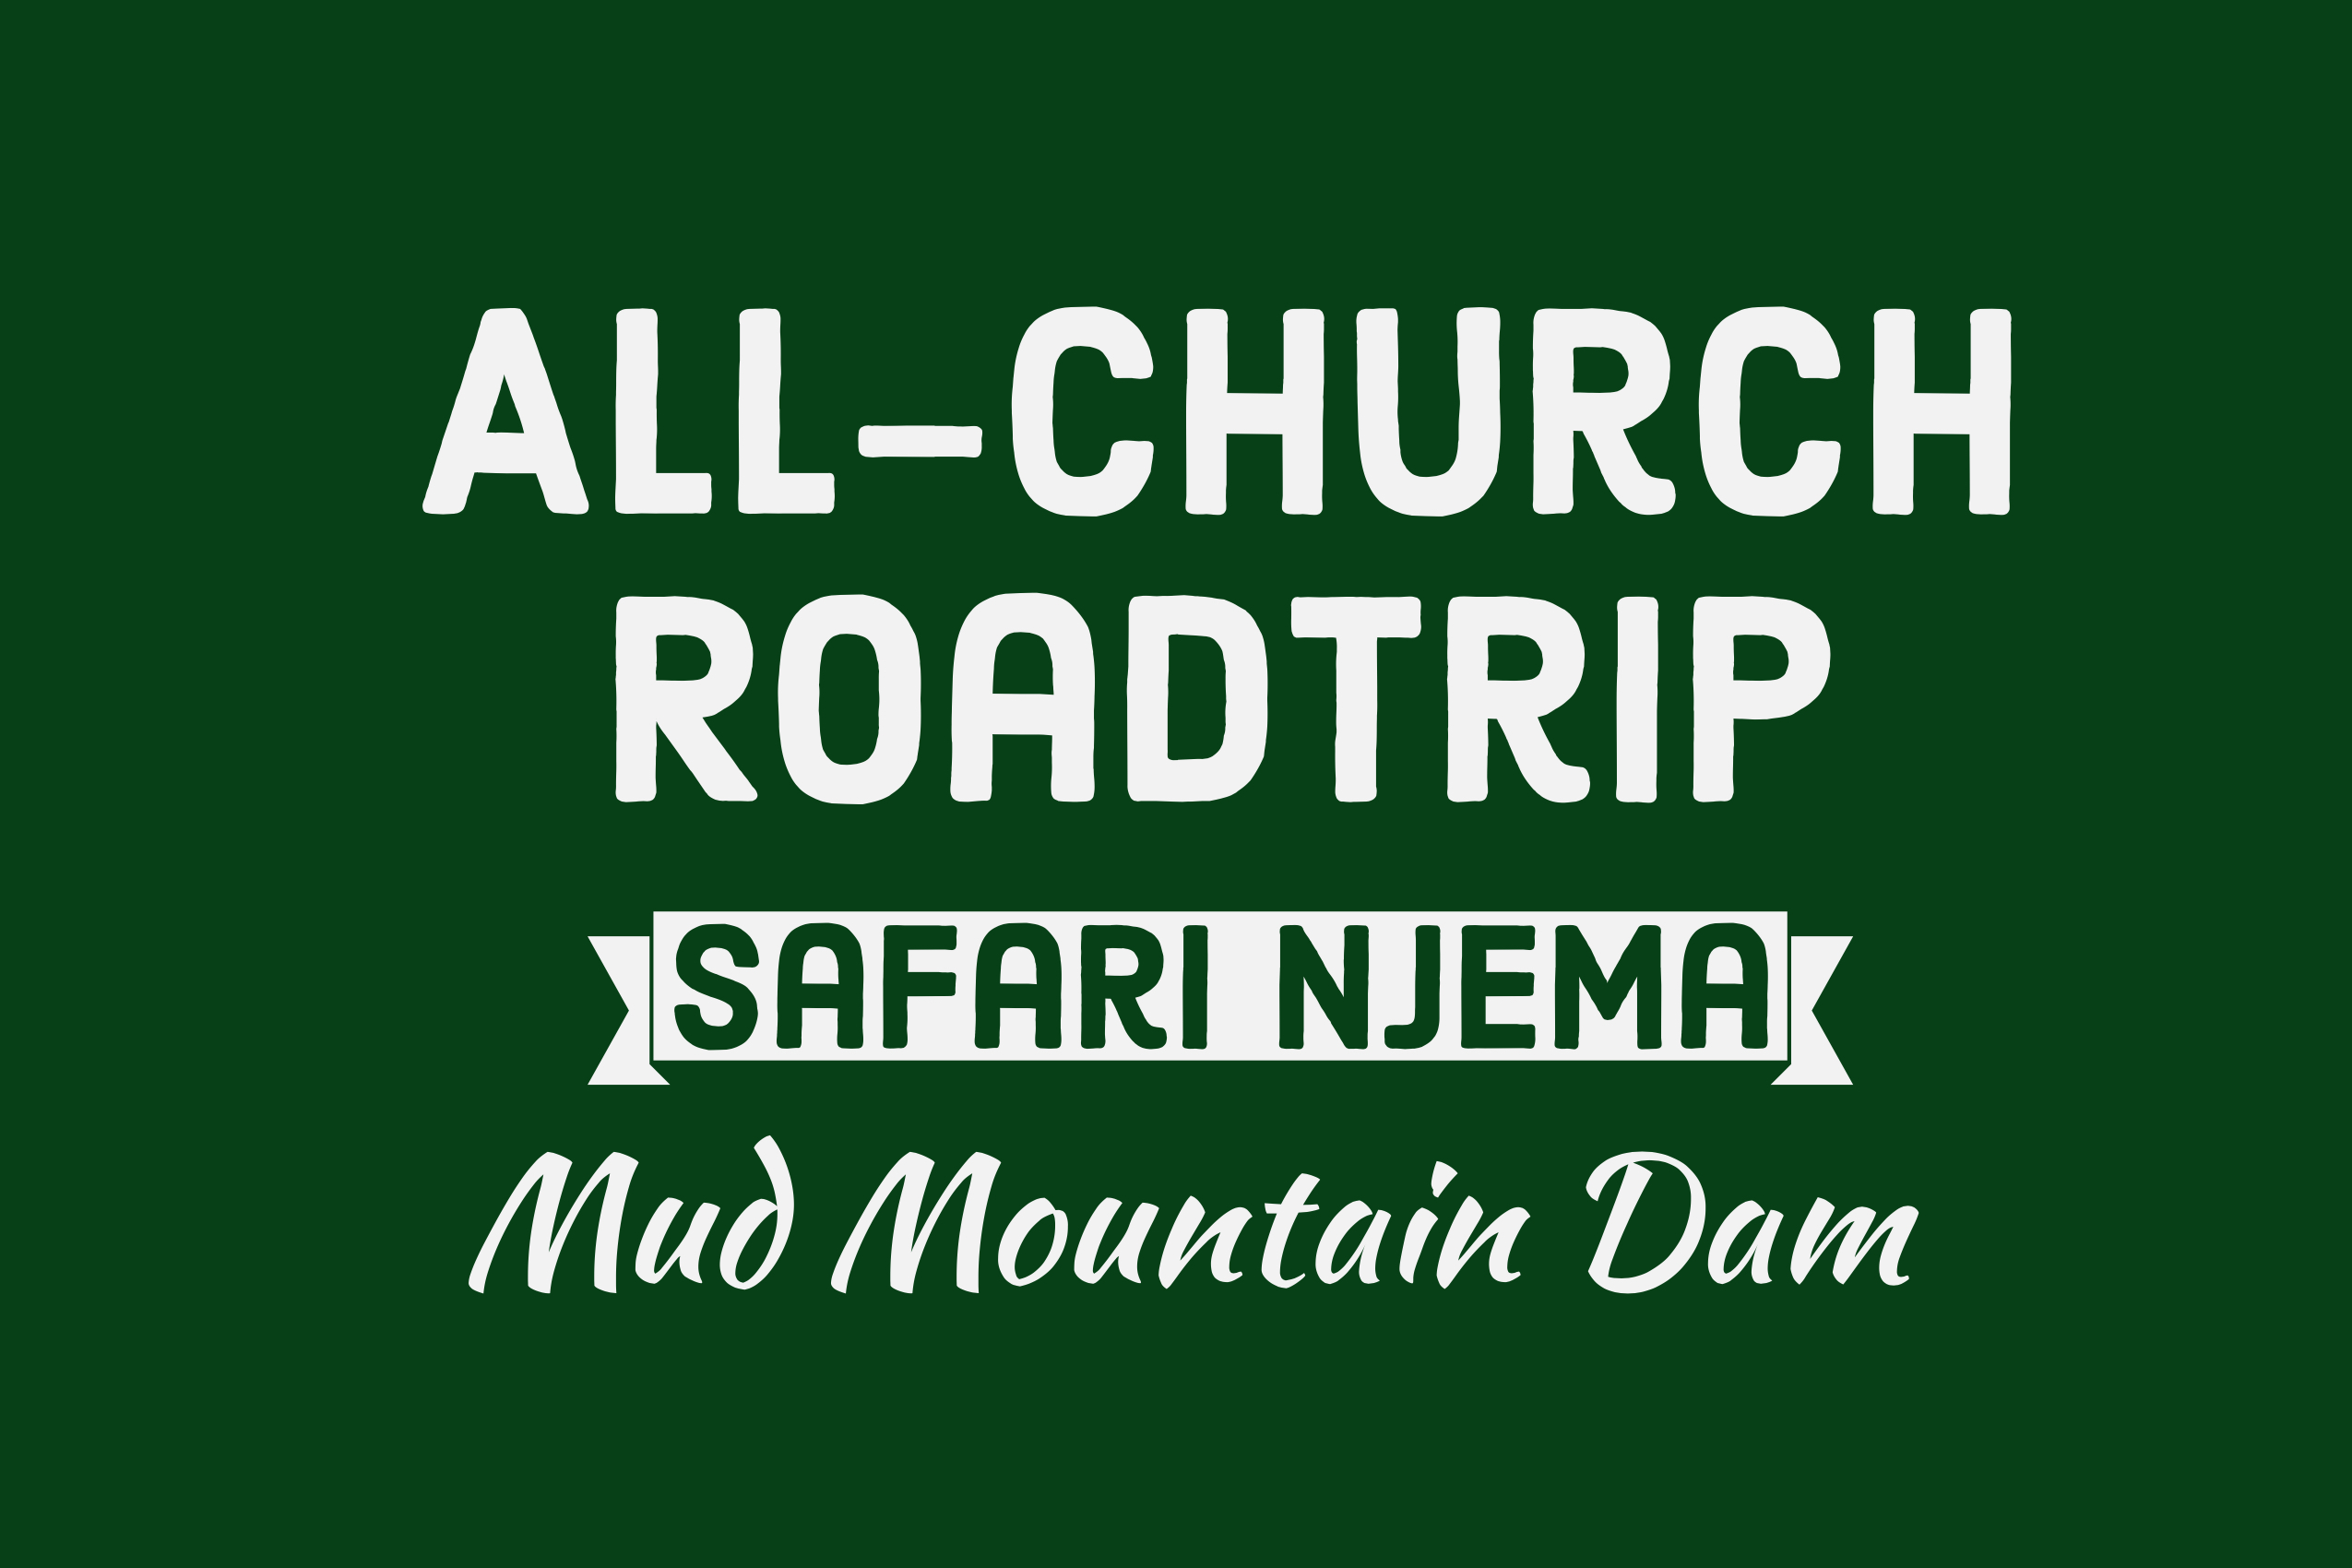 All church road trip sign website